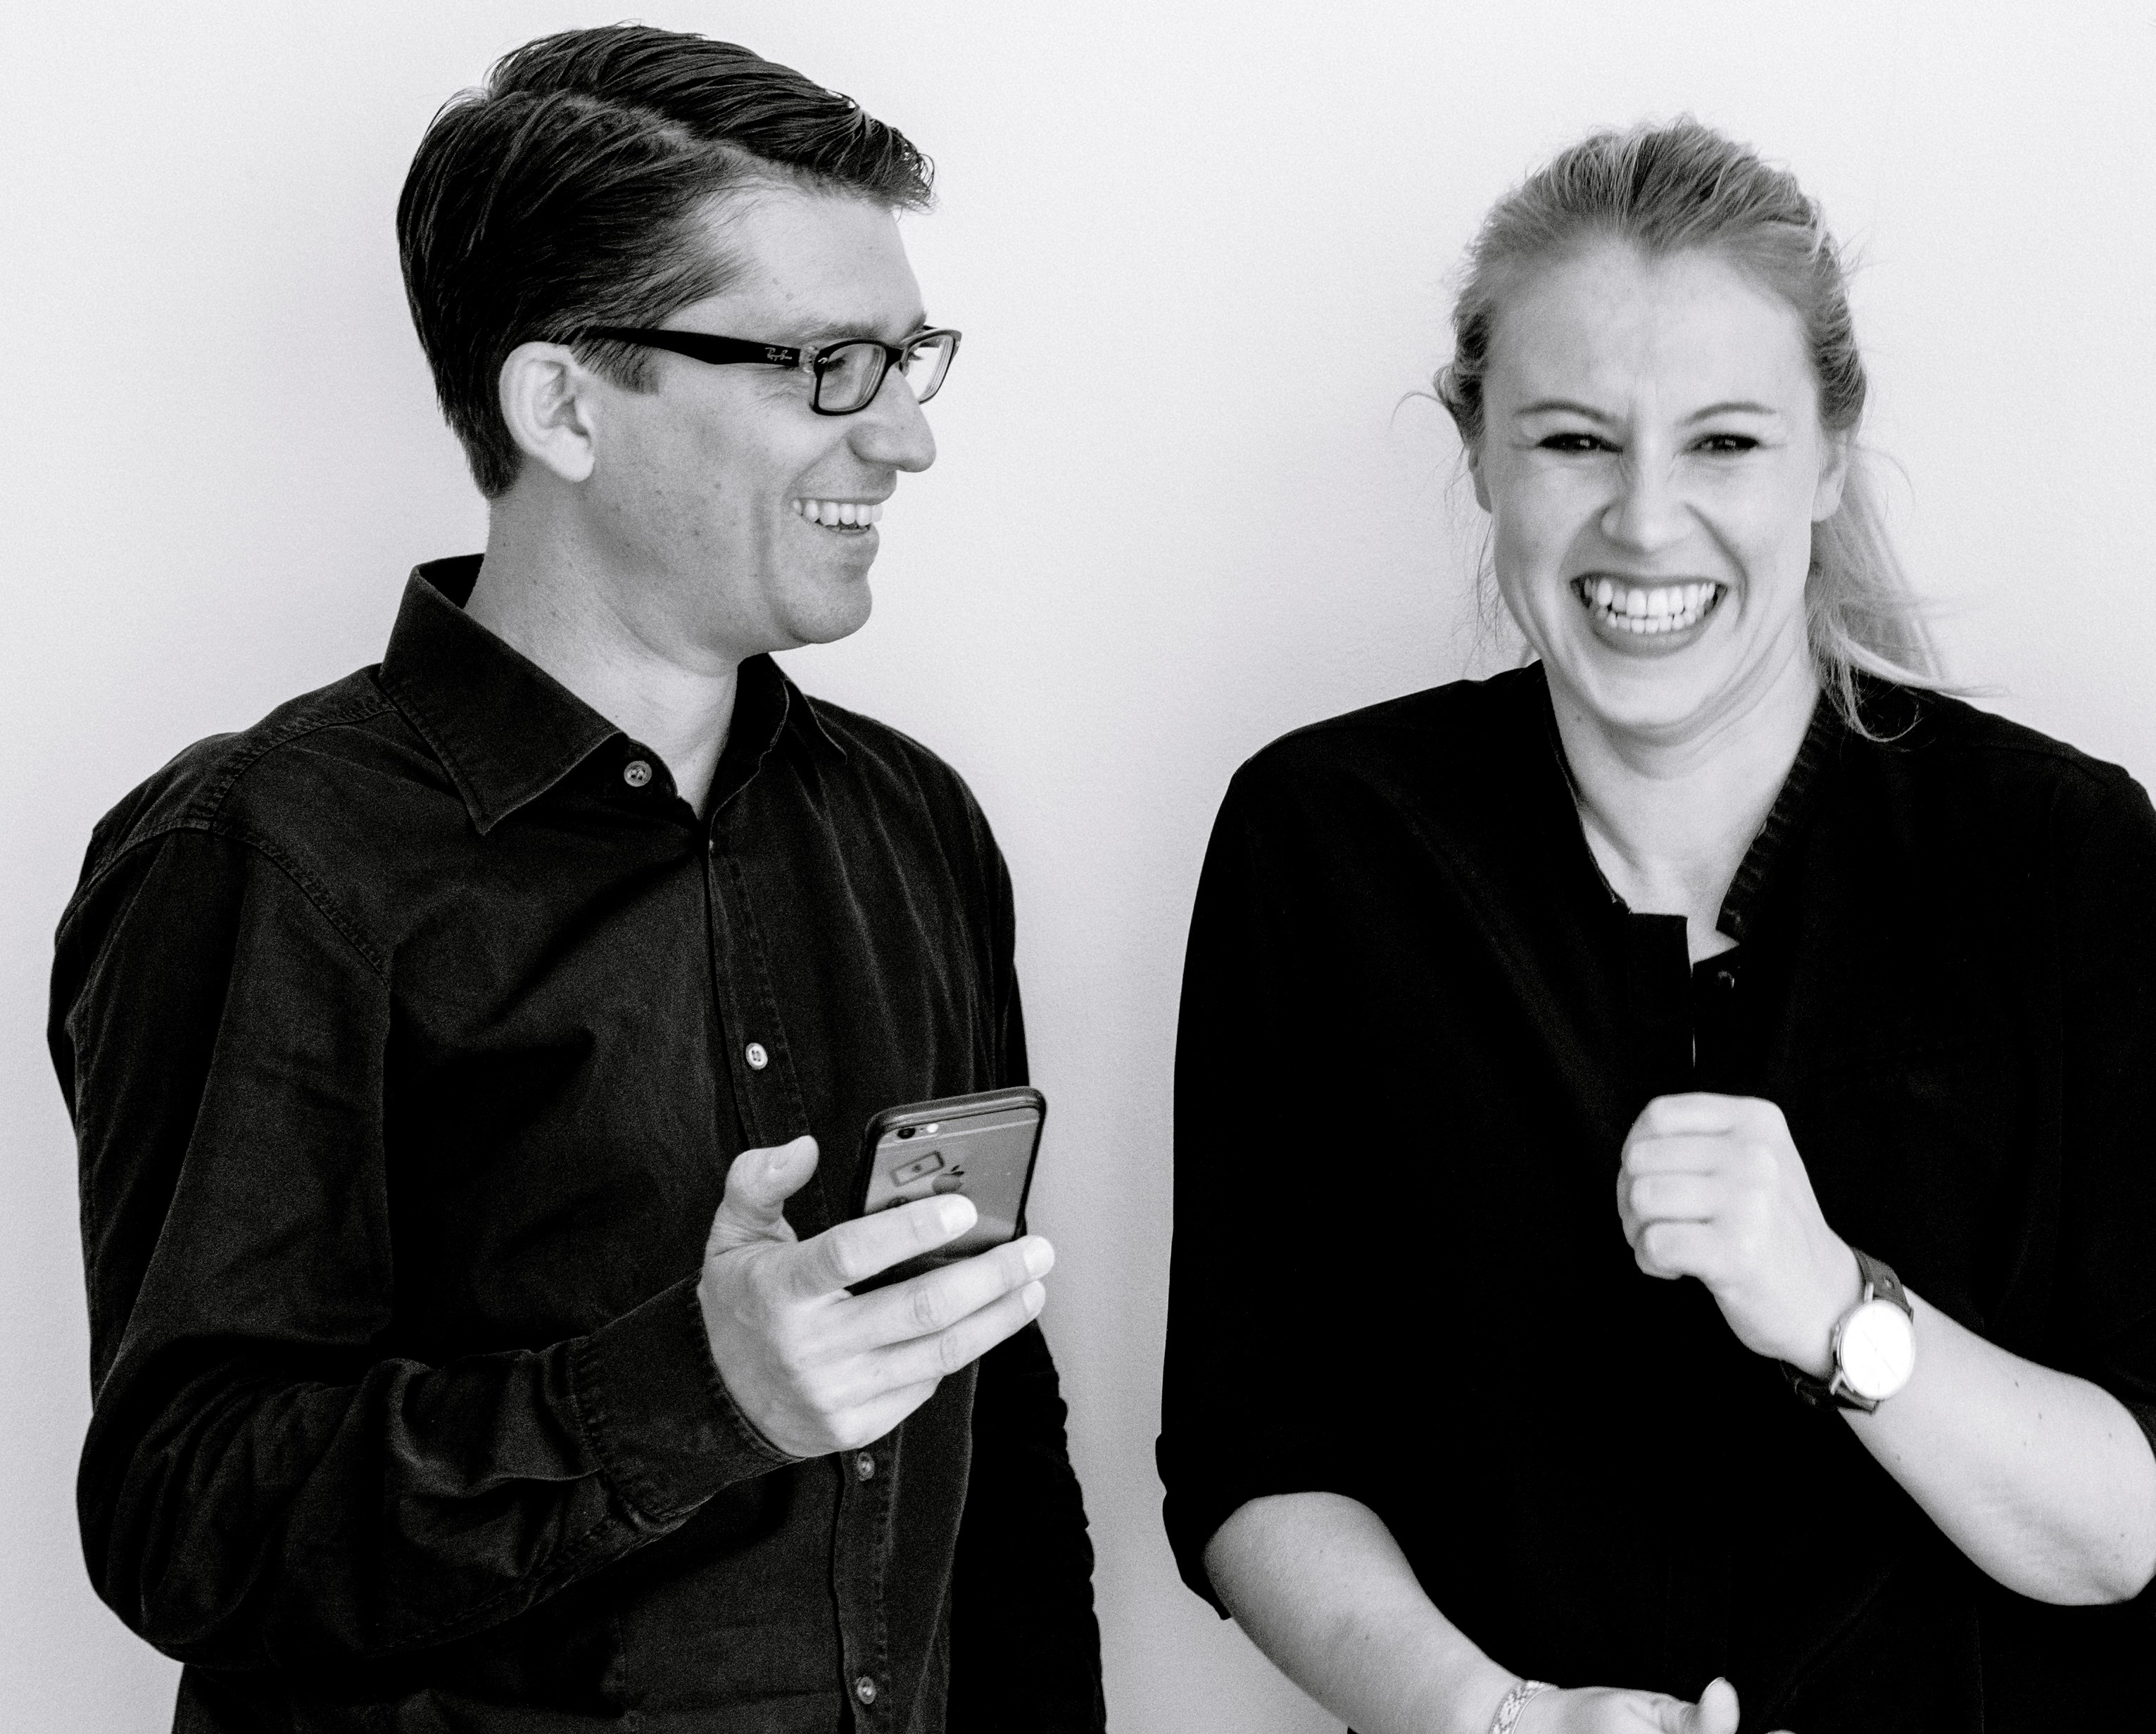 everphone - Jan Dzulko, Nadine Kolbe sw